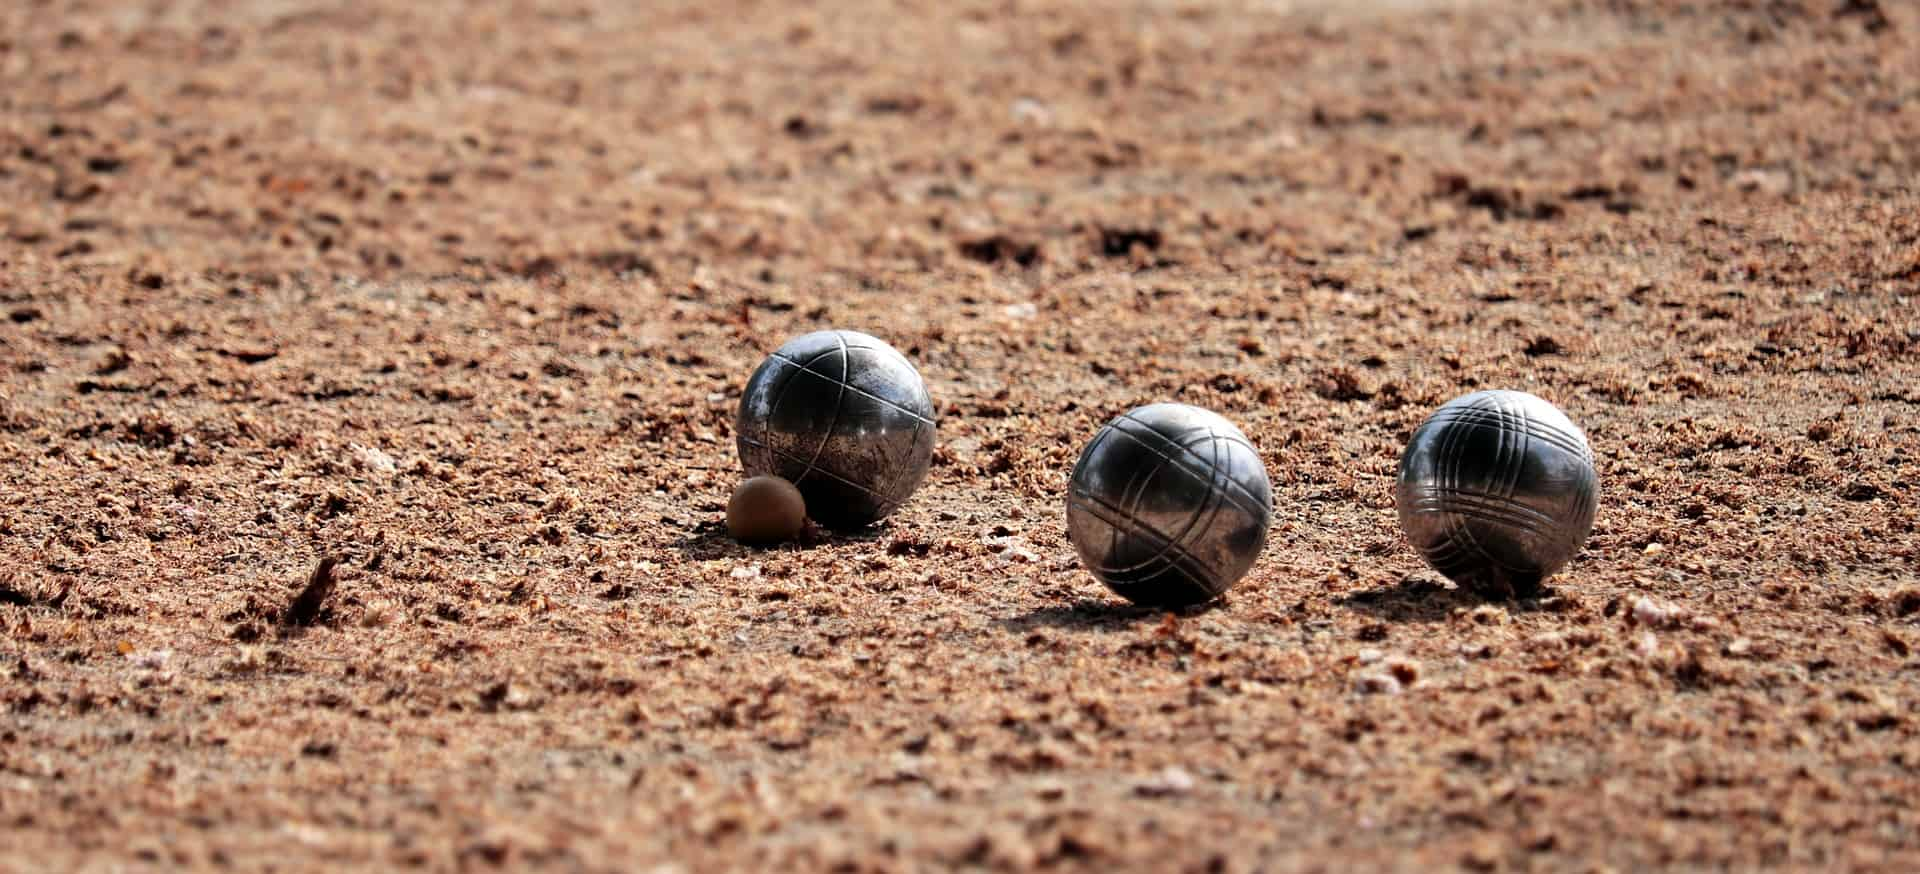 2 bocce ball at the ground